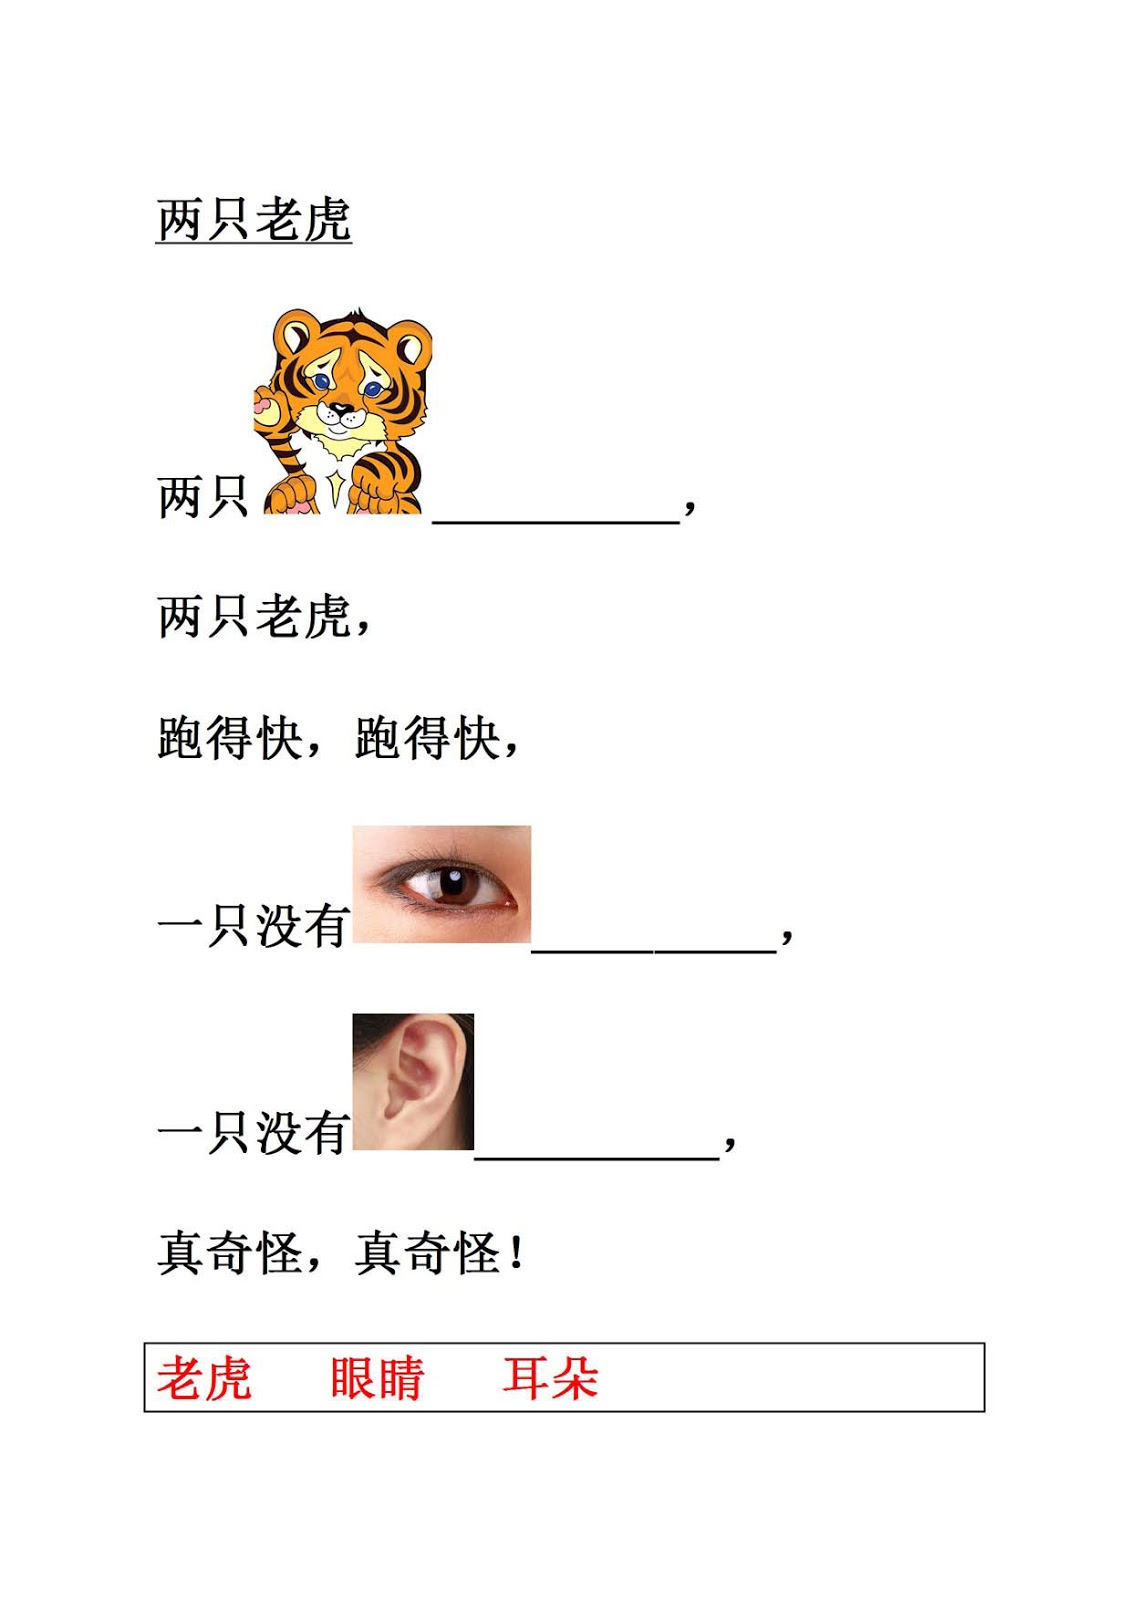 Chinese Fun Class Lesson On Body